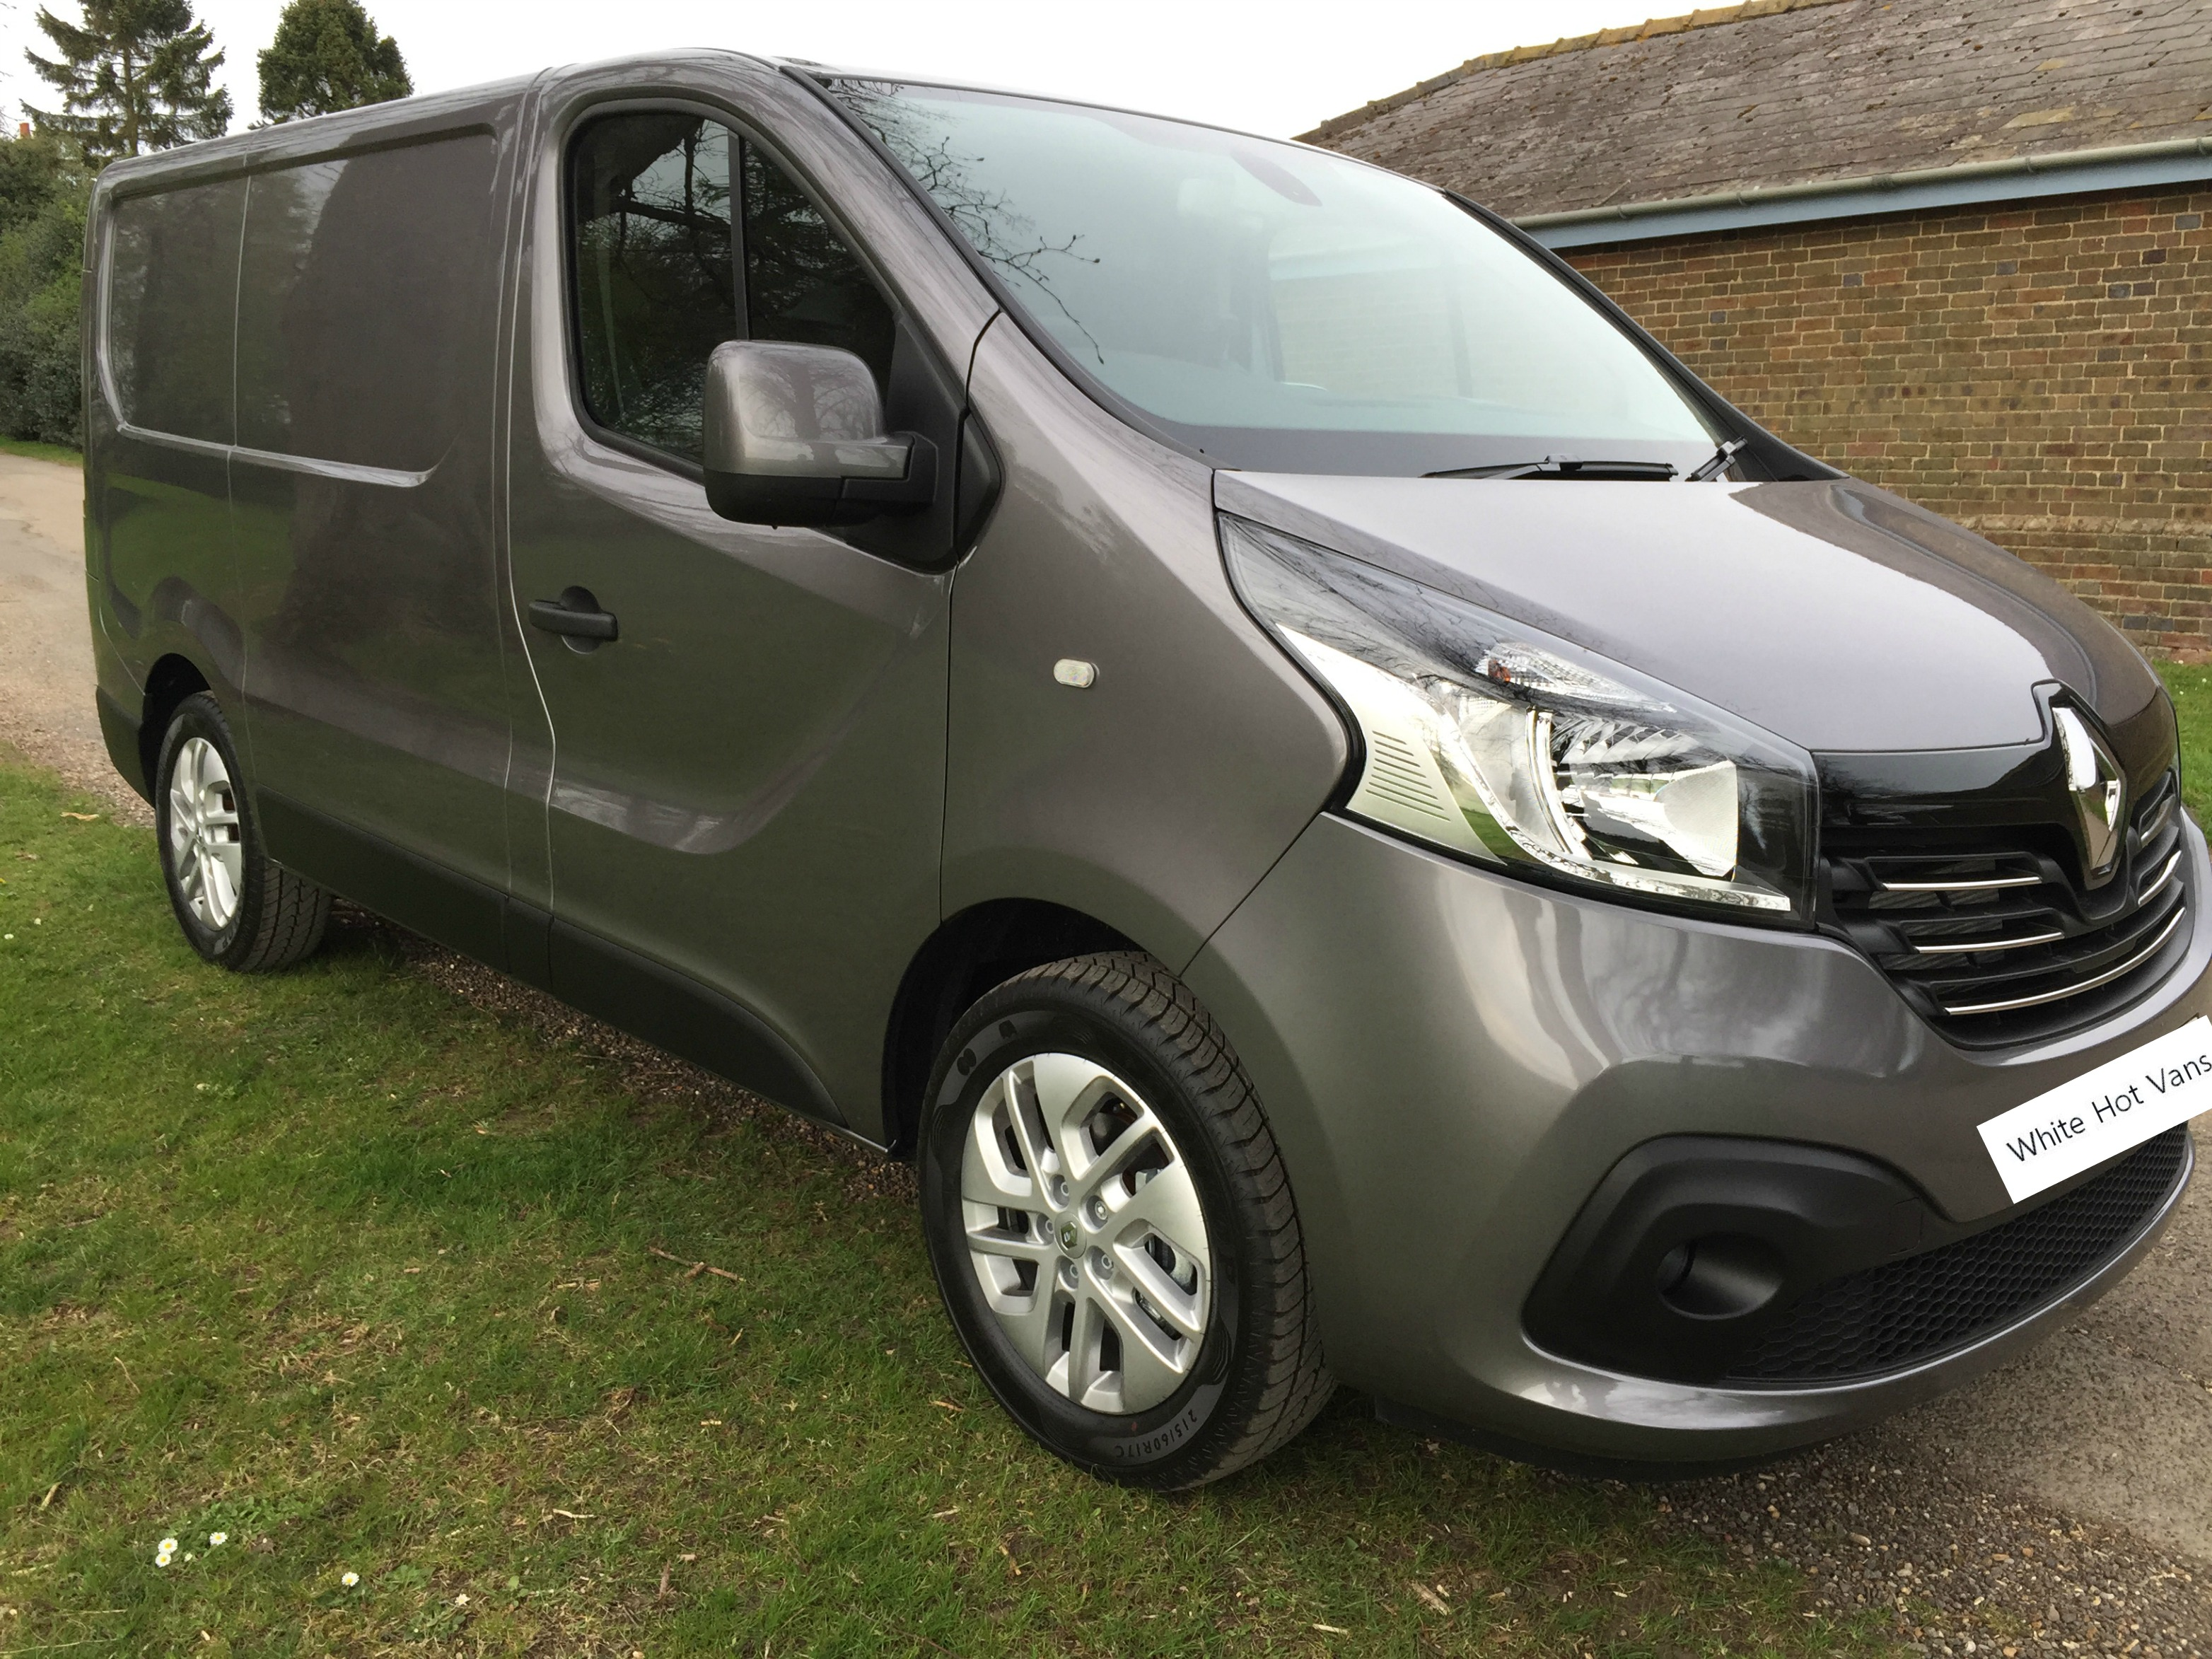 Populaire Renault Trafic Sport SL27 Energy 1.6 dCi 120ps - RE07